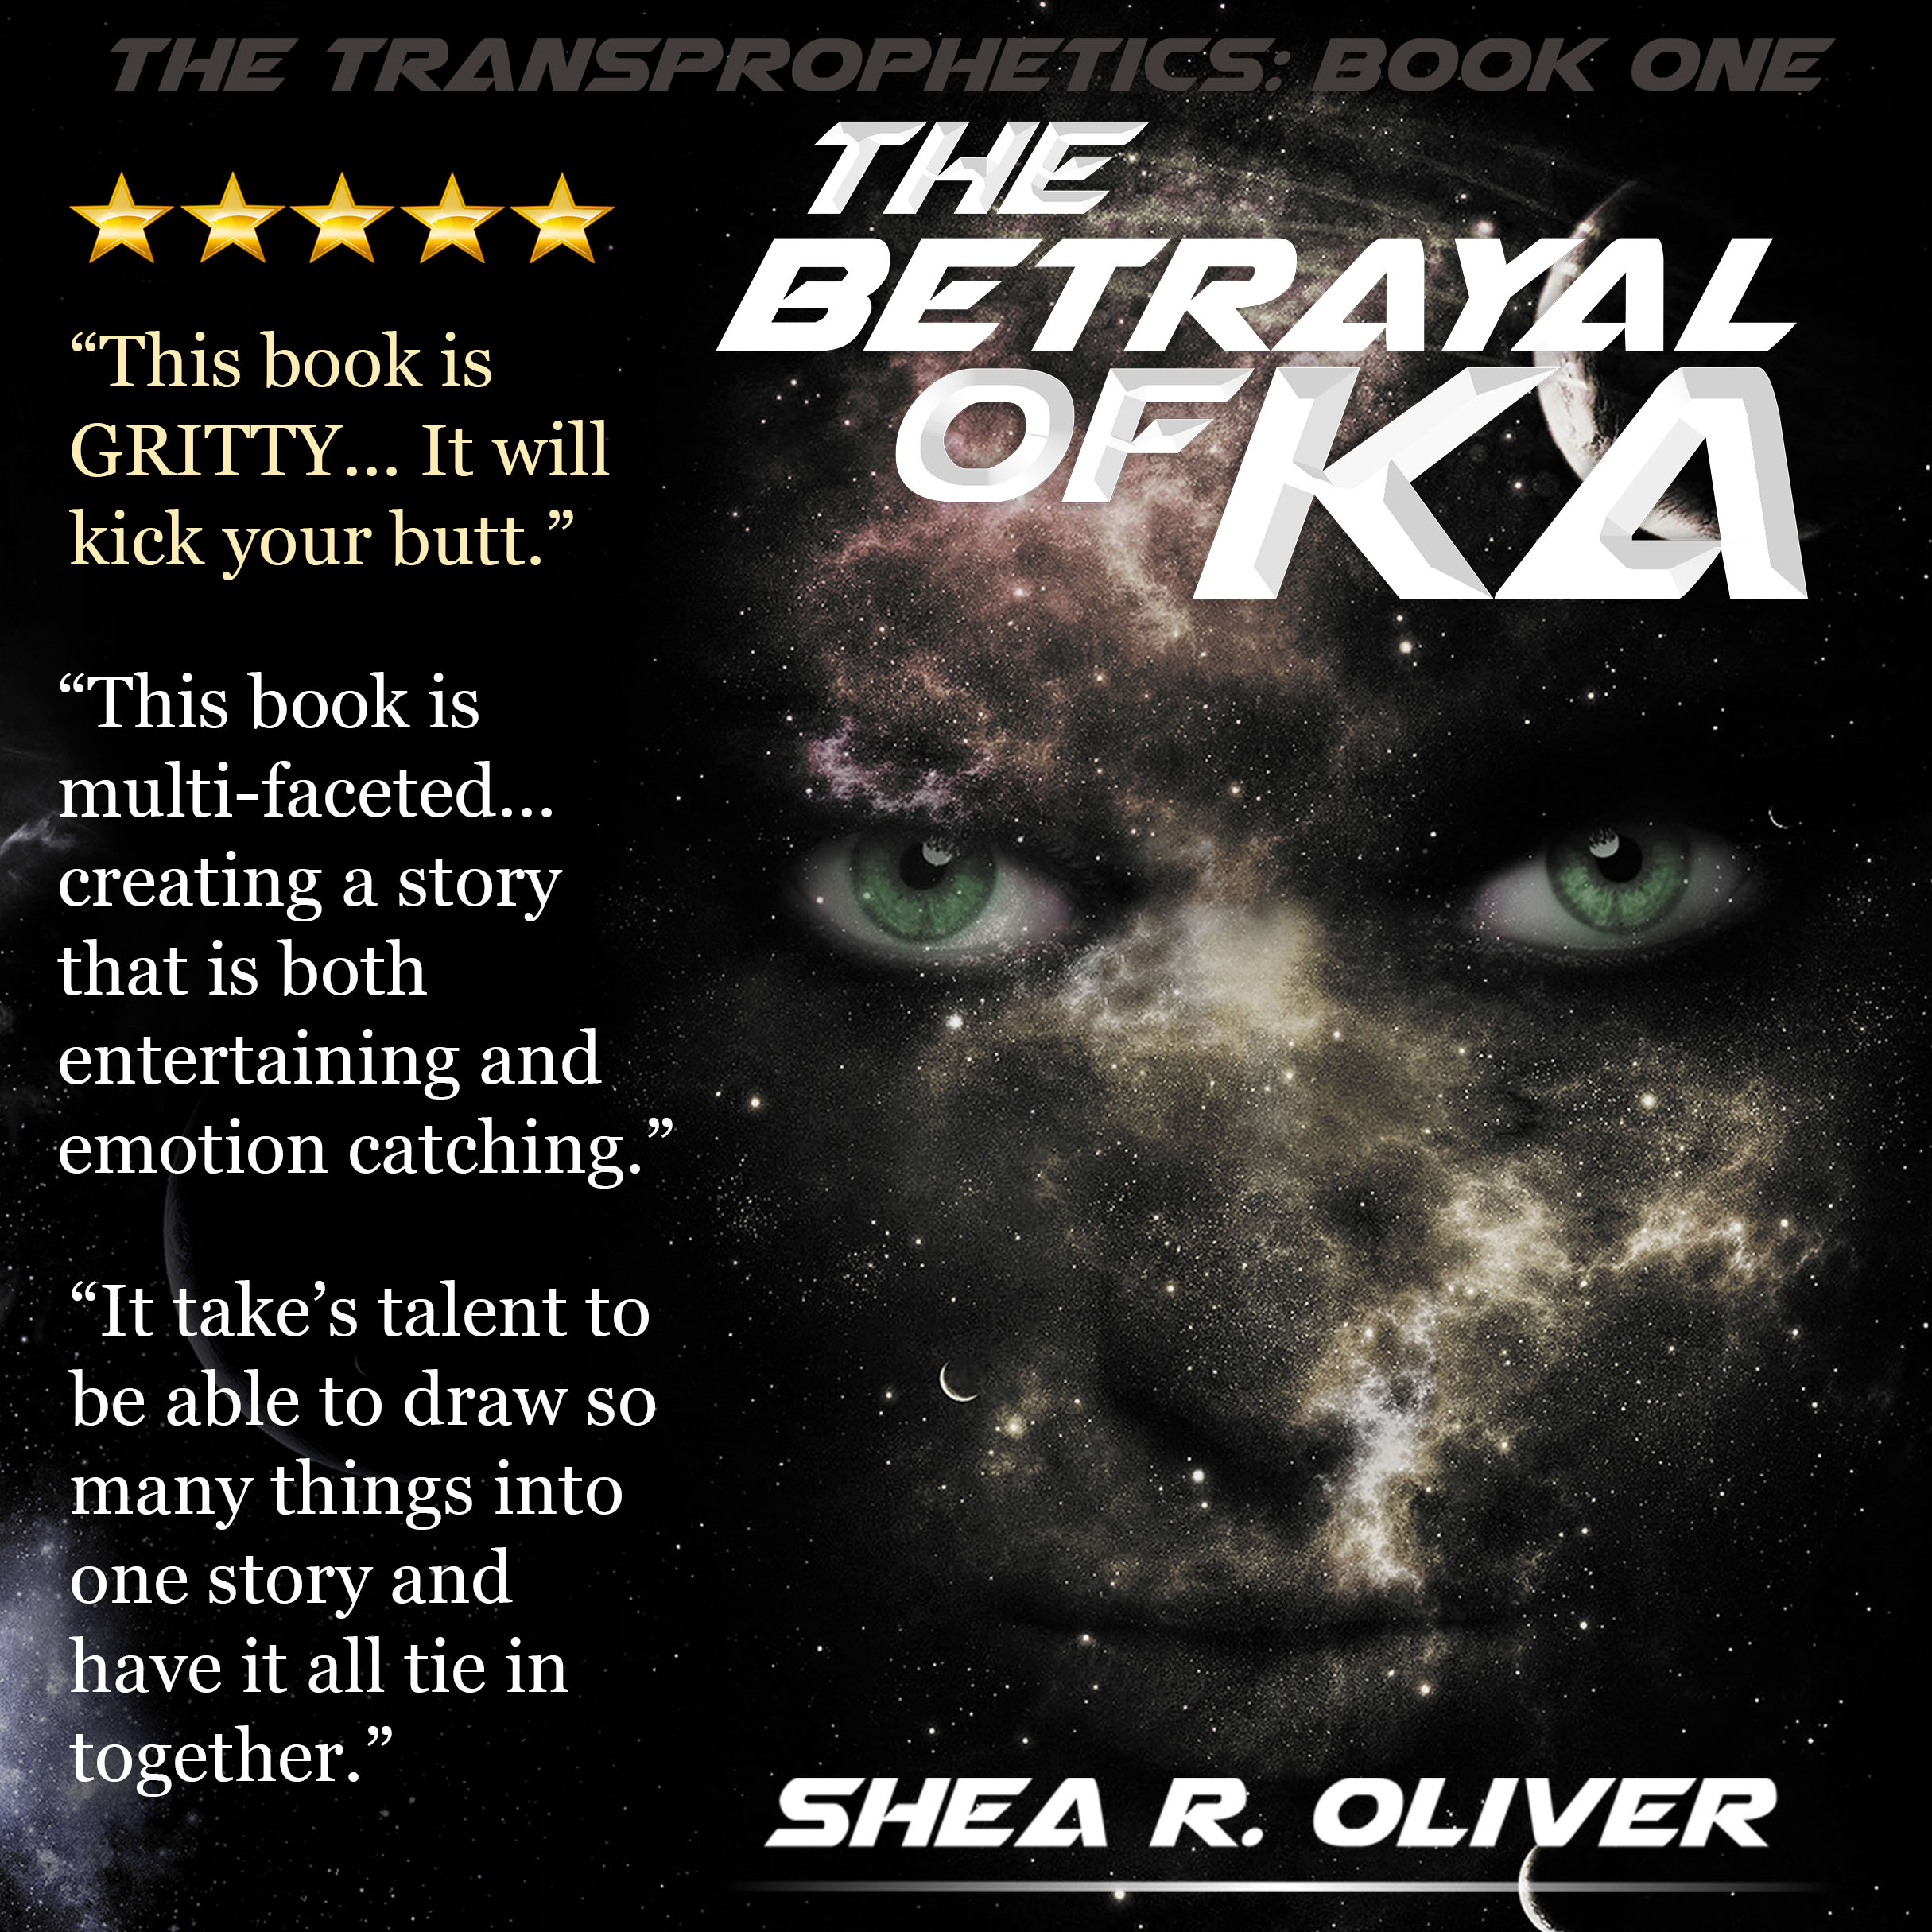 Awesome review of The Betrayal of Ka